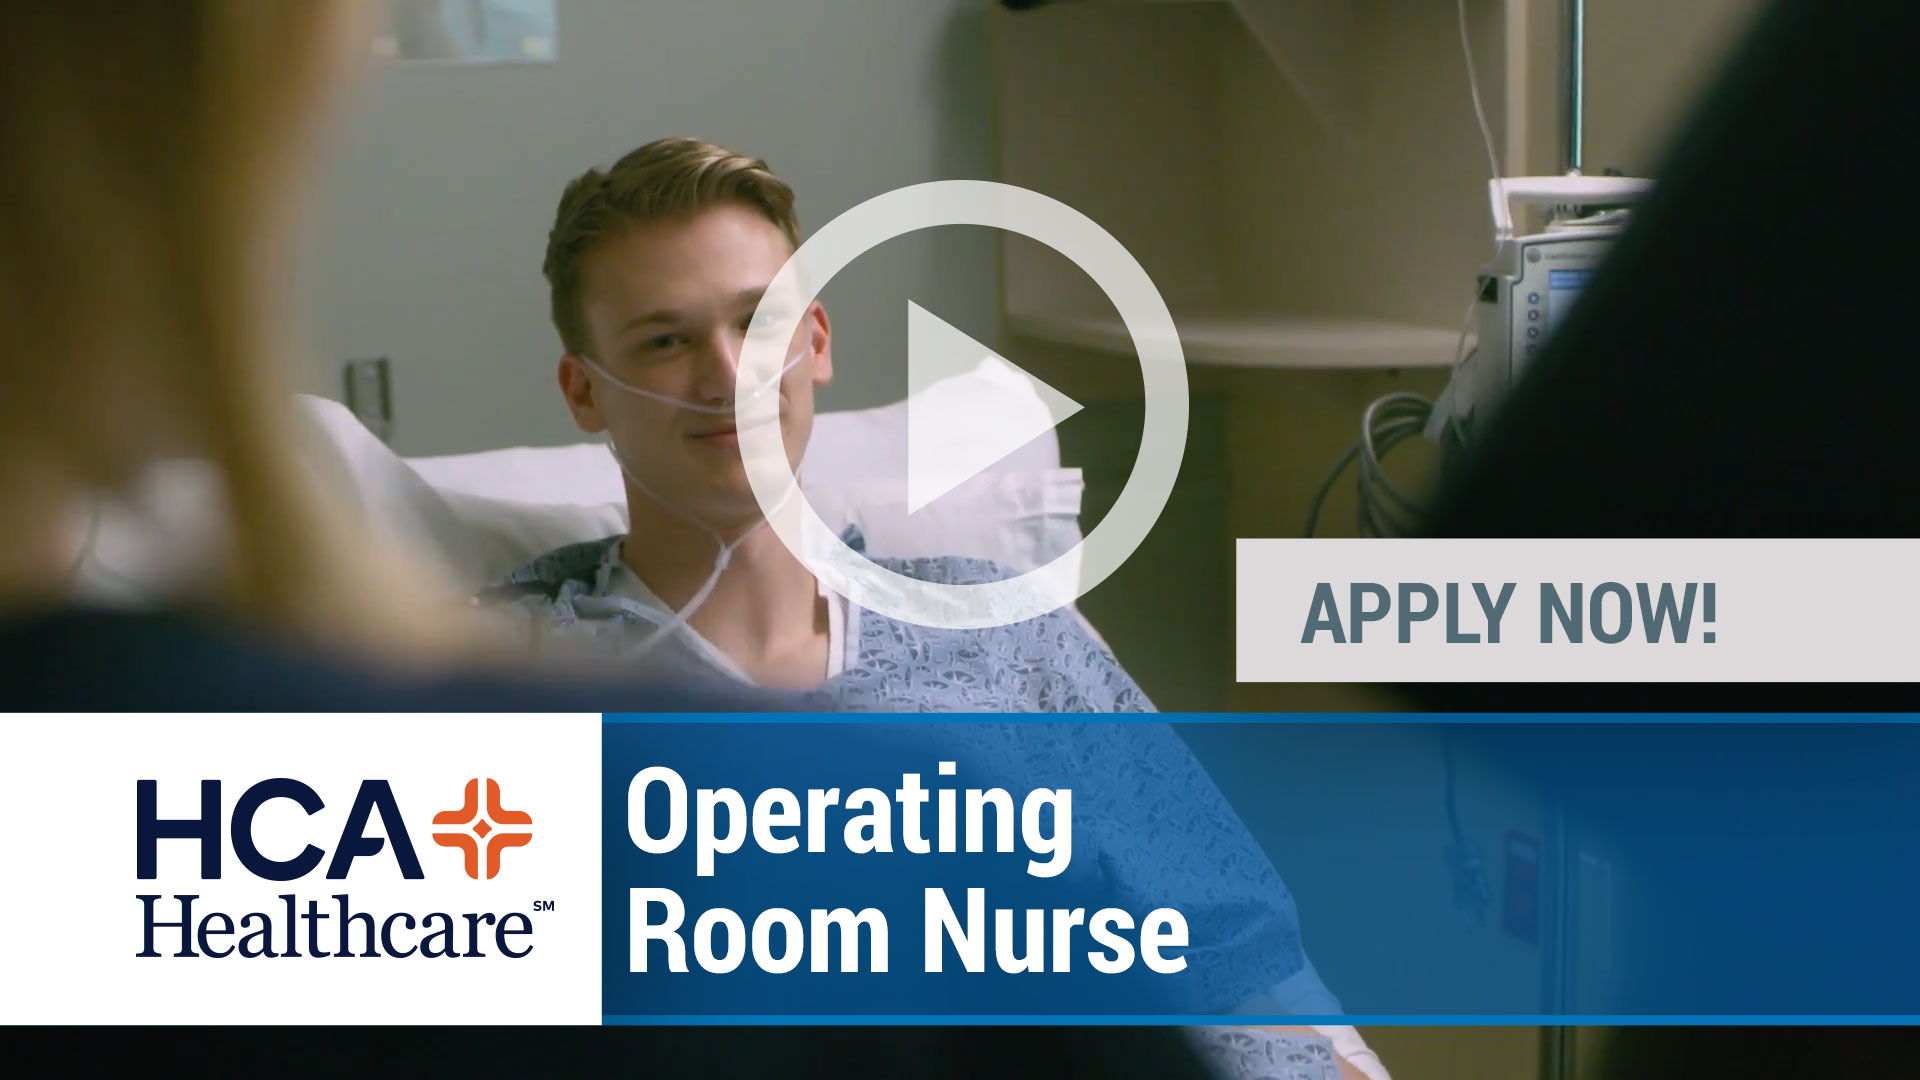 Watch our careers video for available job opening Operating Room Nurse in Bowling Green, Kentucky